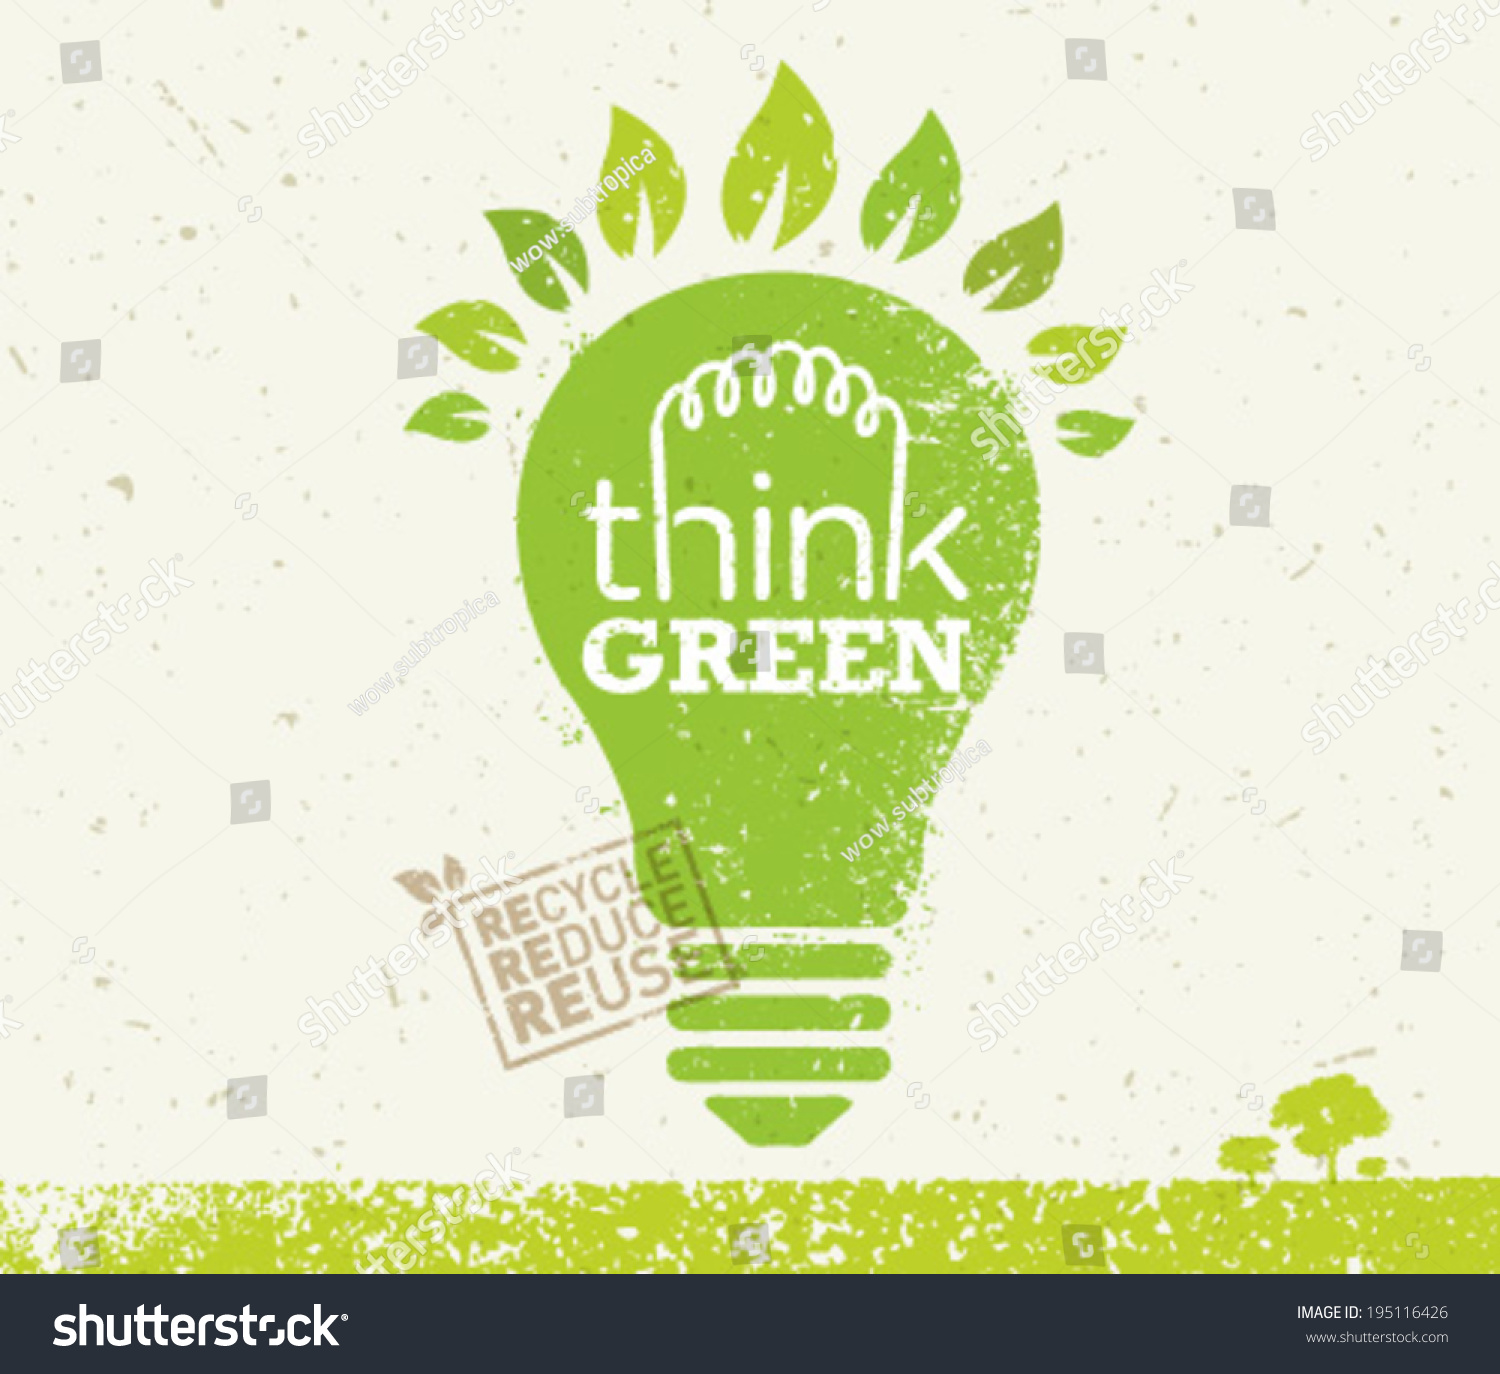 think green community essay Sustainable community essays:  green architecture is an approach to building which has  i try and think of sustainability as innovative technologies and.